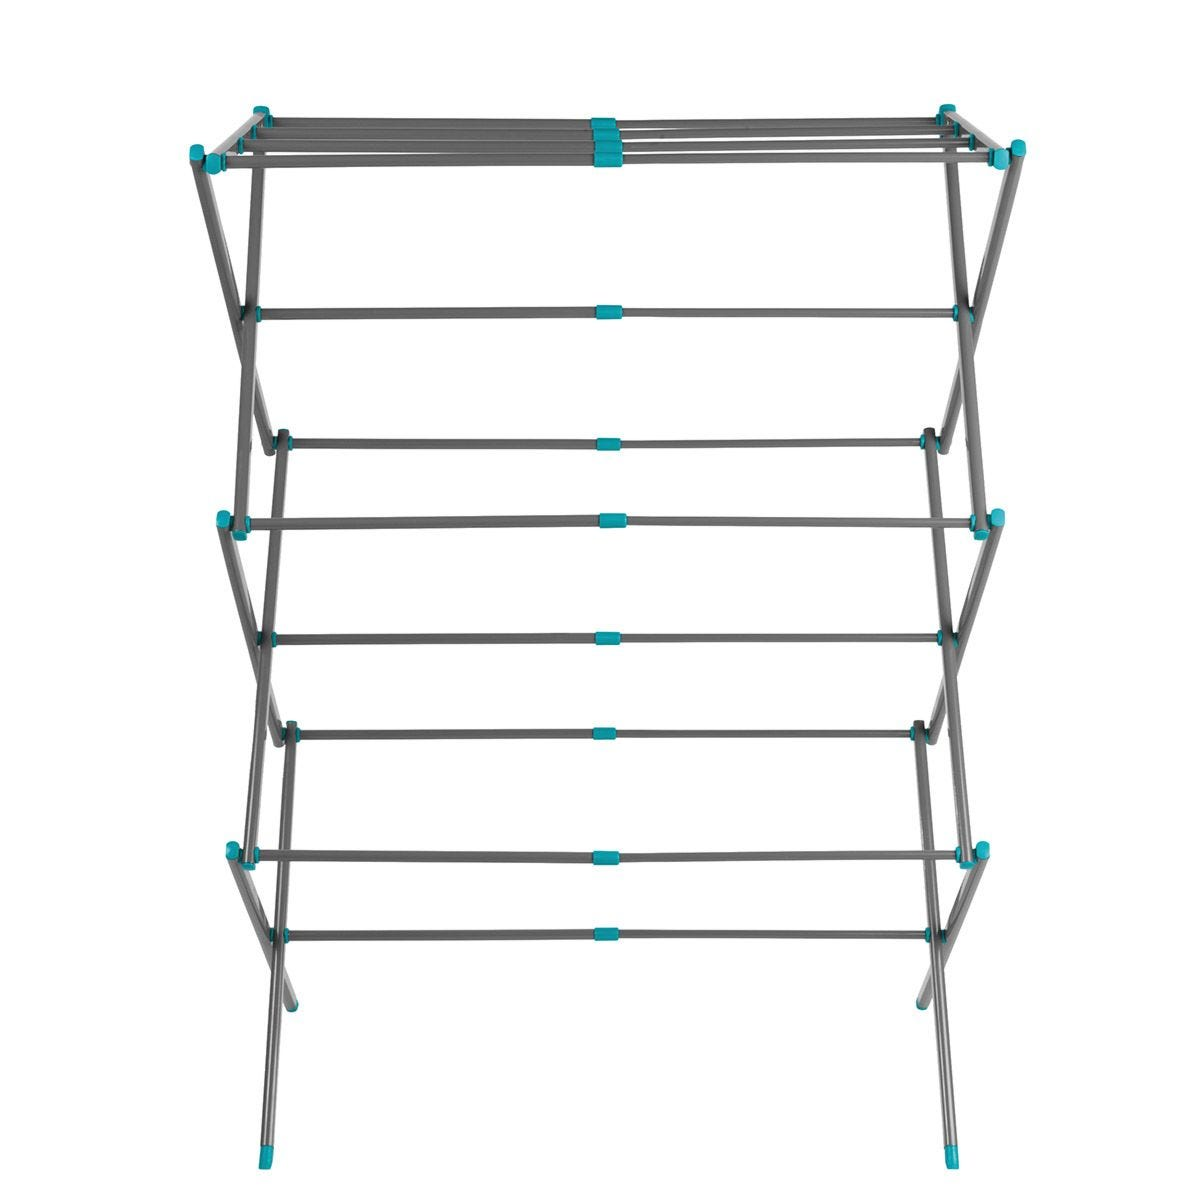 Beldray 3-Tier Expandable Clothes Airer 7 Metres - Turquoise/Grey